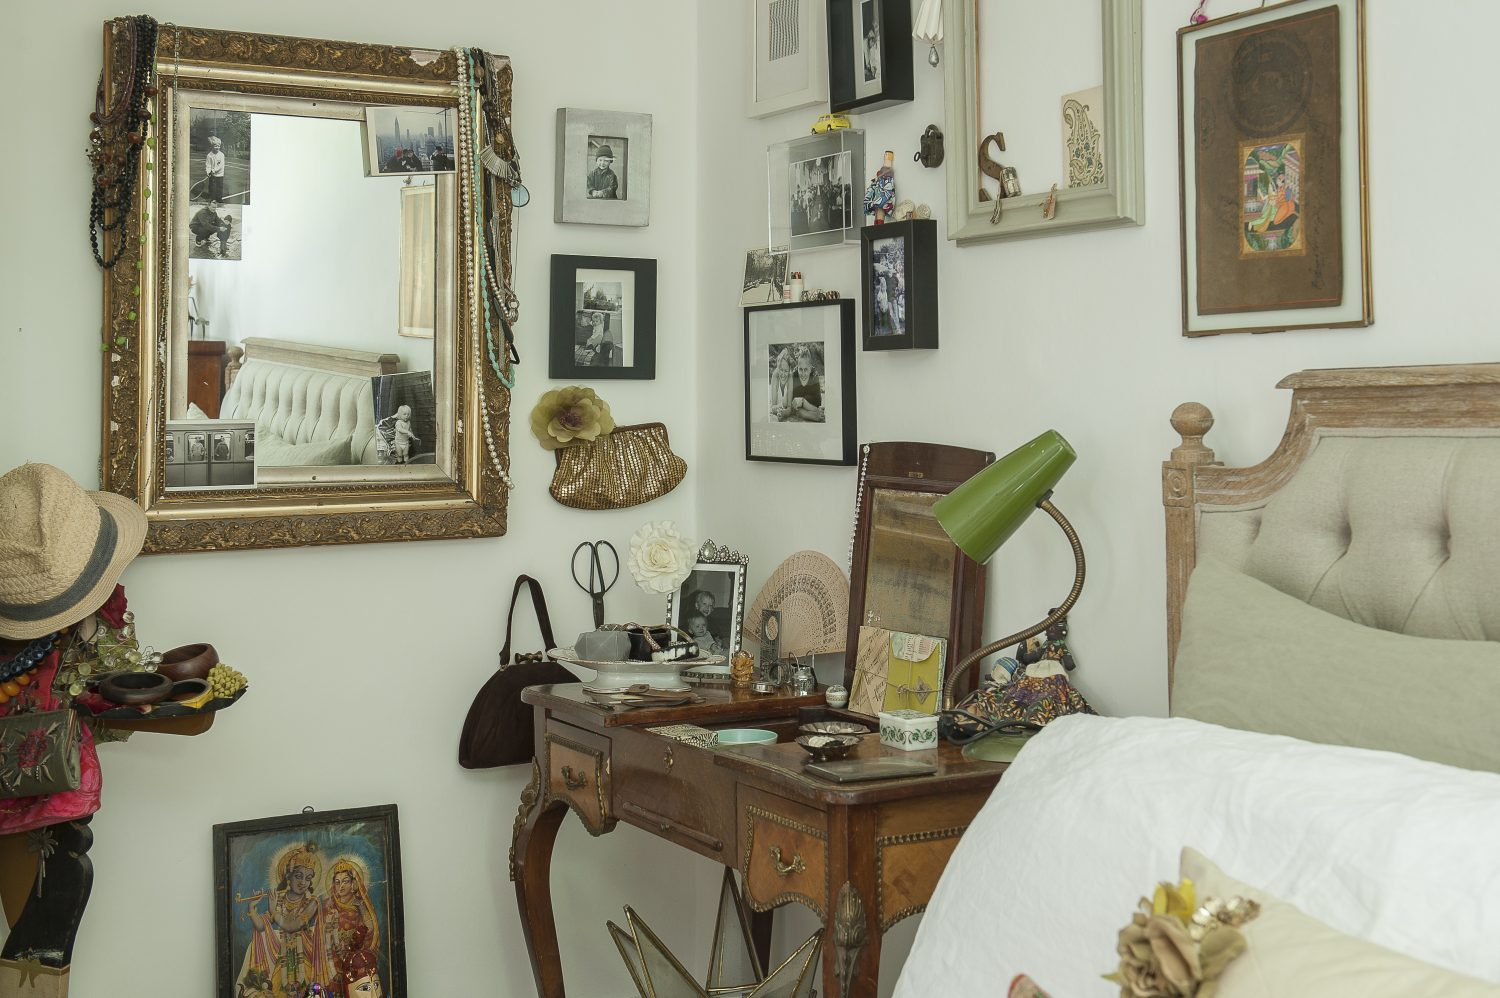 The dressing table was from her grandmother and was originally a writing desk